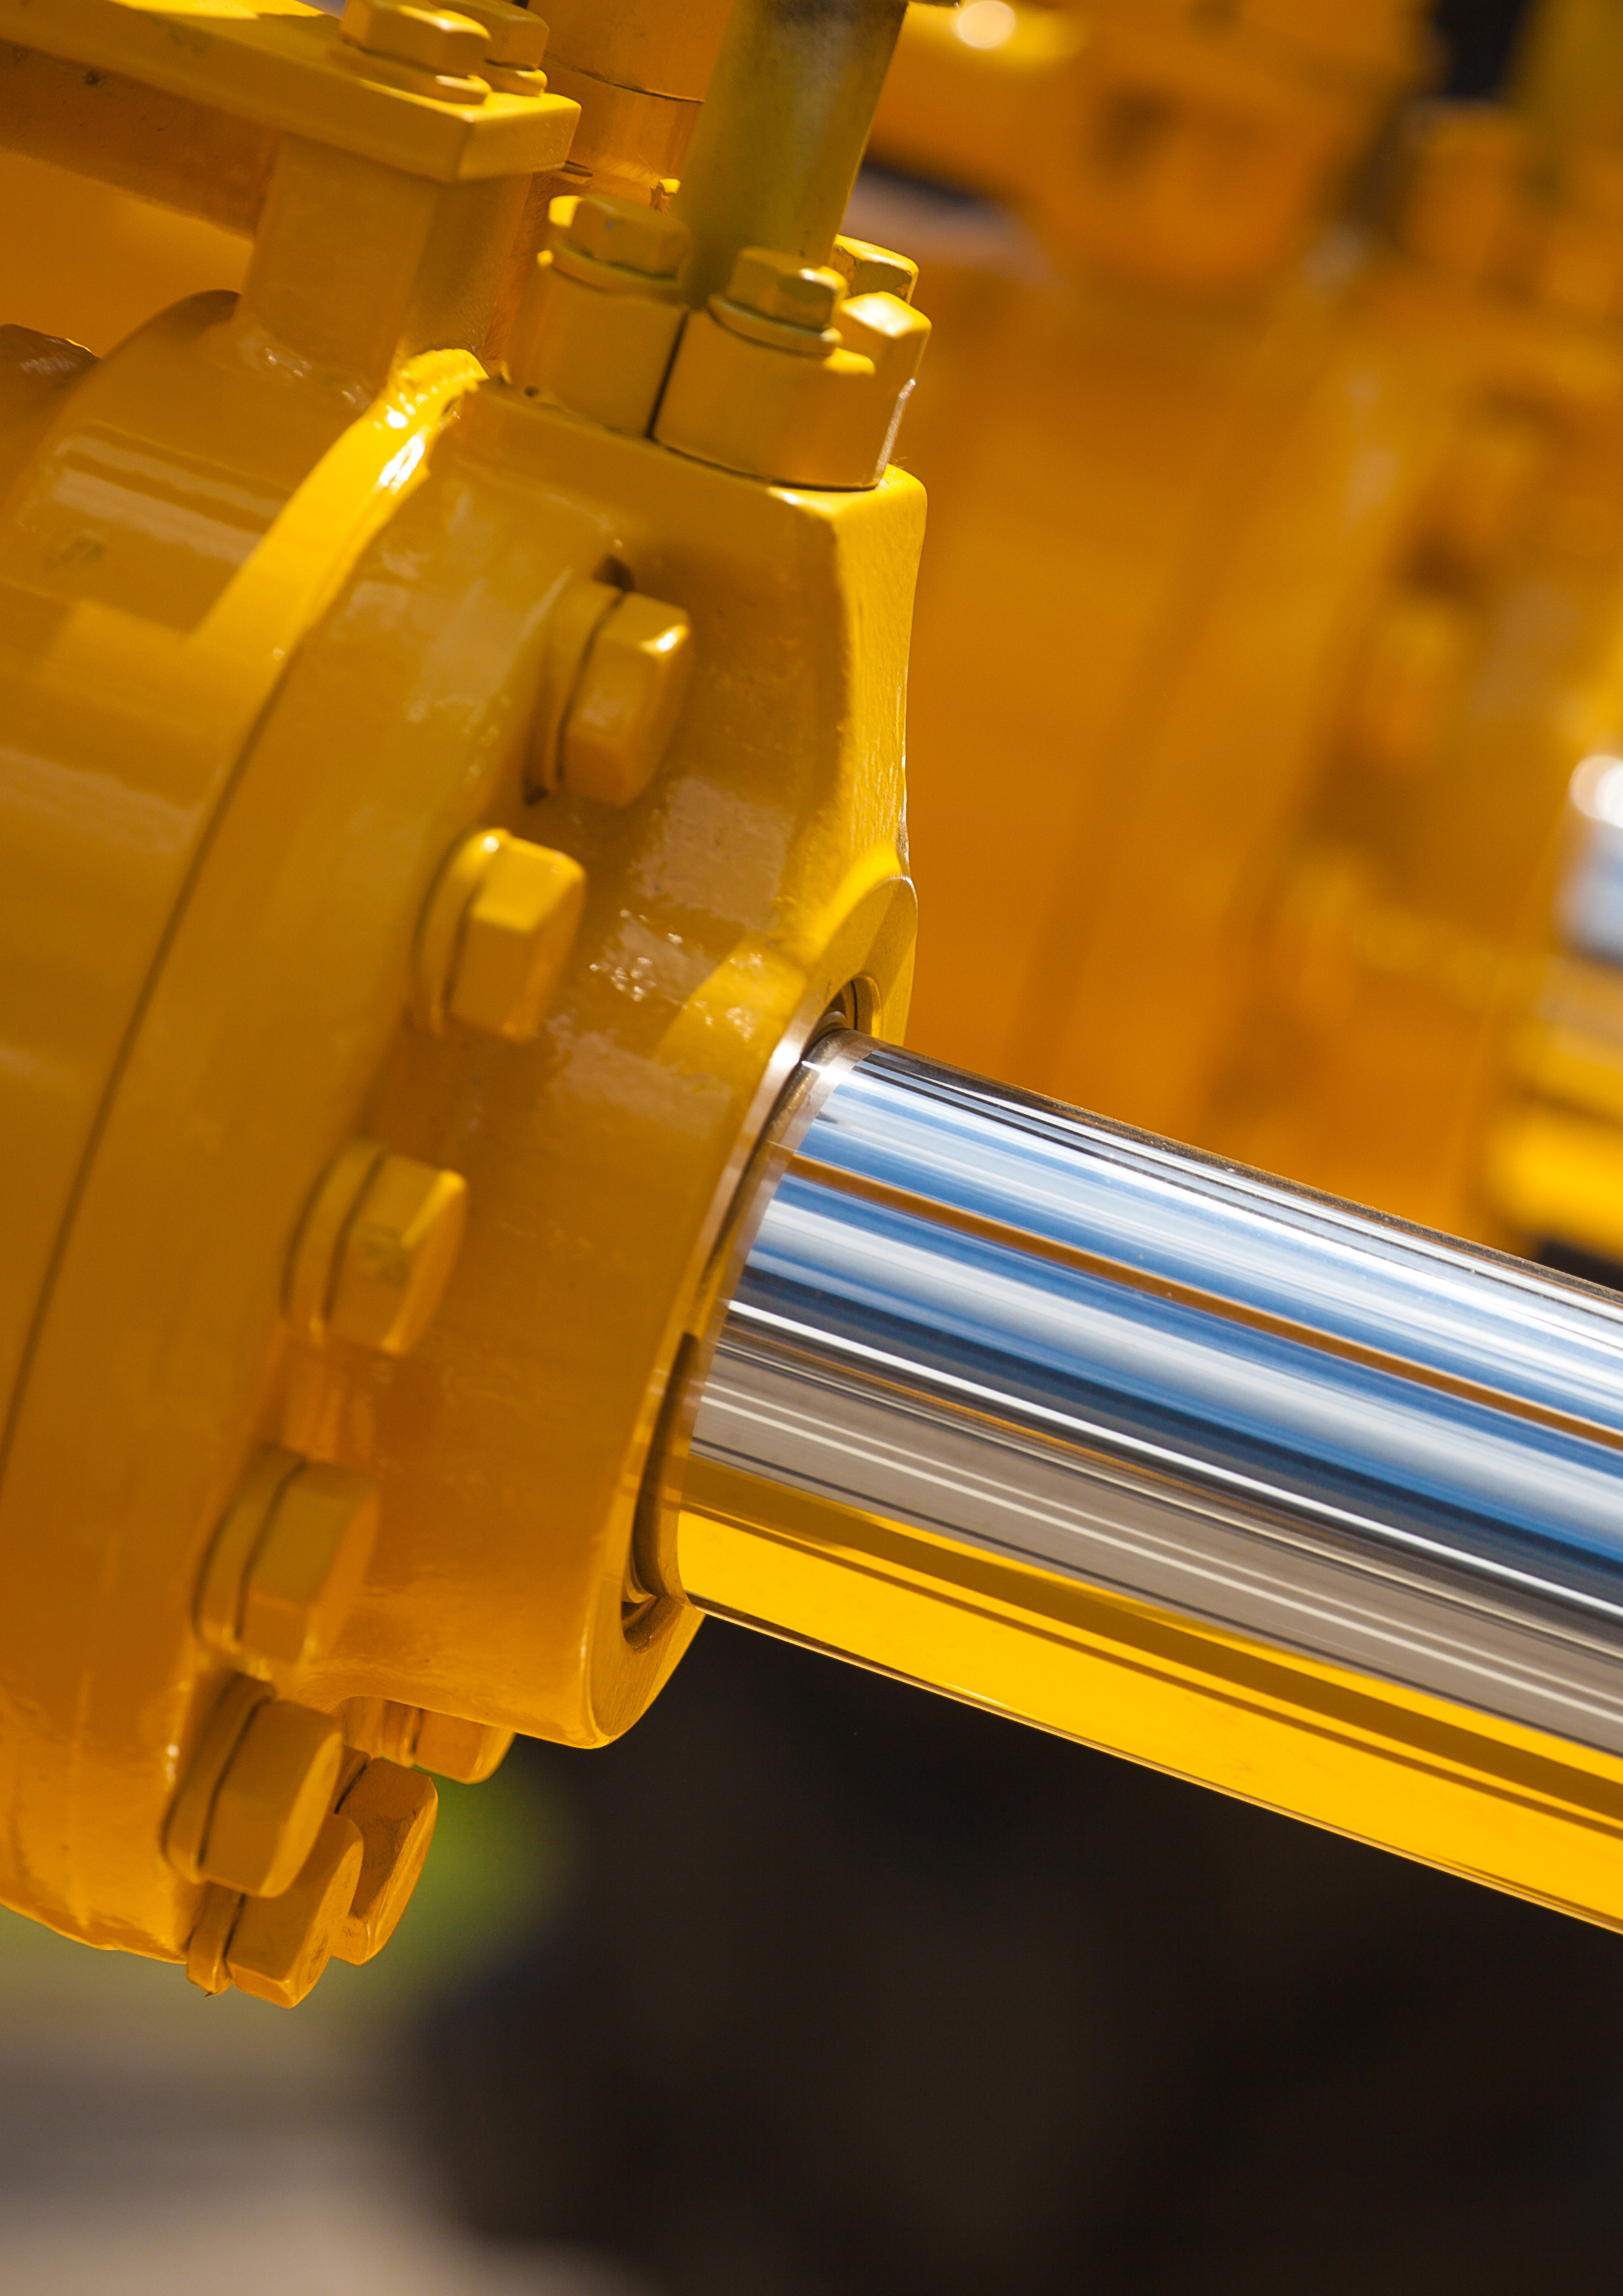 Fluid Power Systems Hydraulics and Pneumatics Training Courses